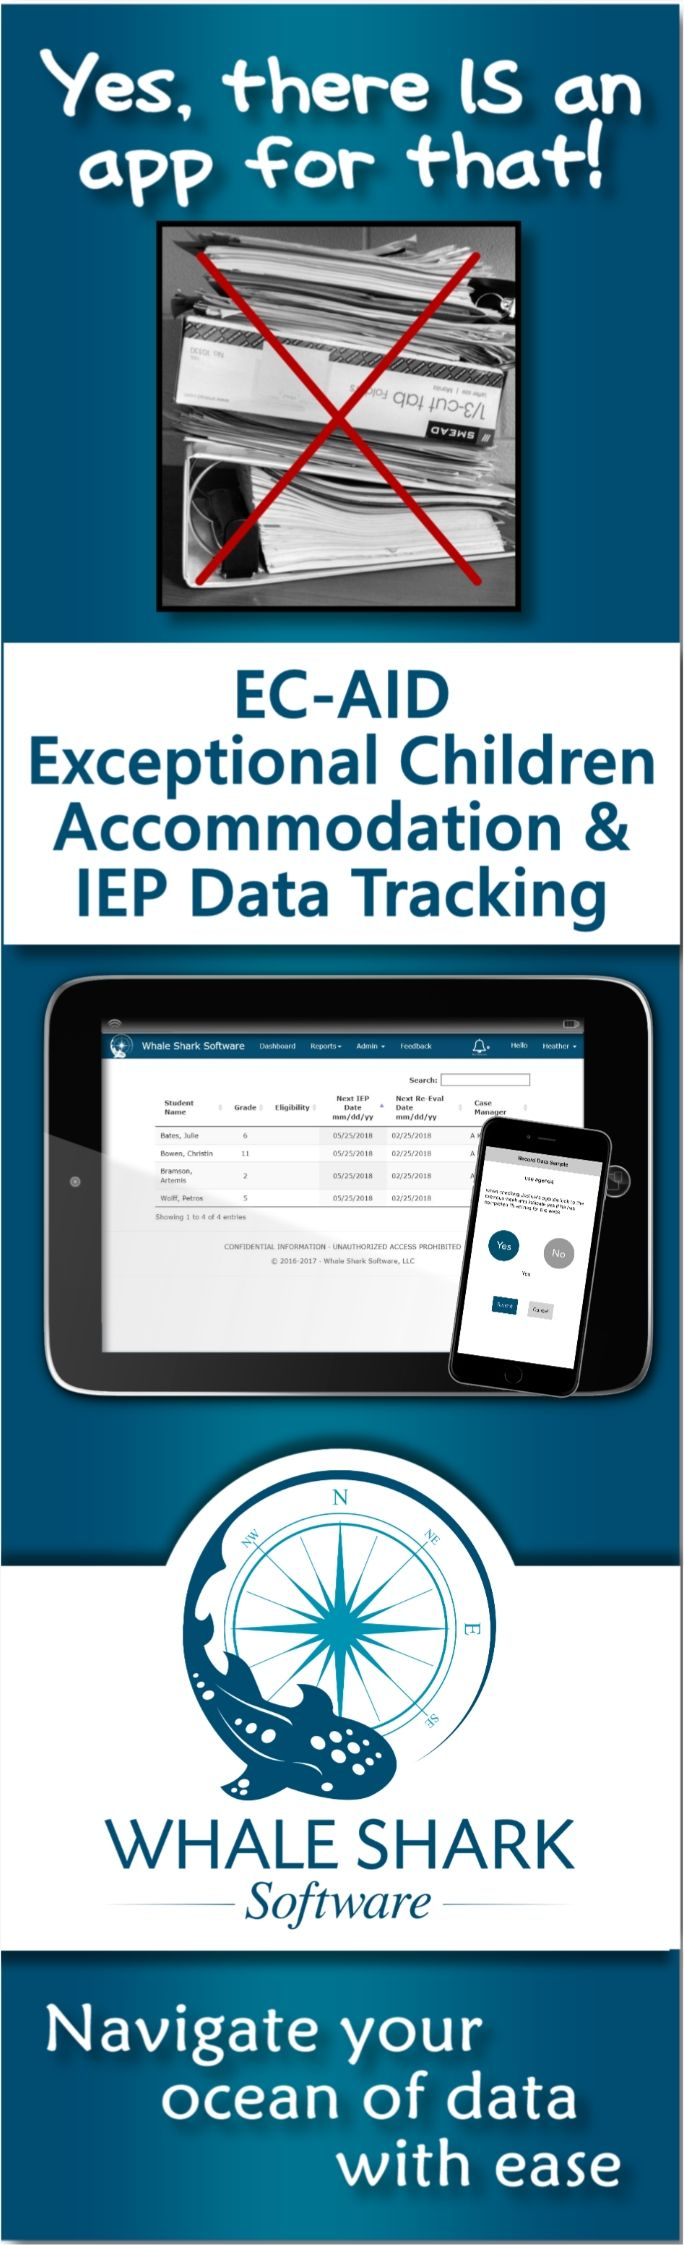 Developed with teachers, EC-AID allows real time data tracking against IEP goals and student accommodations on a mobile device or computer. Student-centered app is available to all teachers and staff working with an enrolled child. Get notifications when goals are due to be monitored, and generate reports and graphics to share progress.  #iep #iepdata #SpecialEducation #specialed #iepdatacollection #ECAID